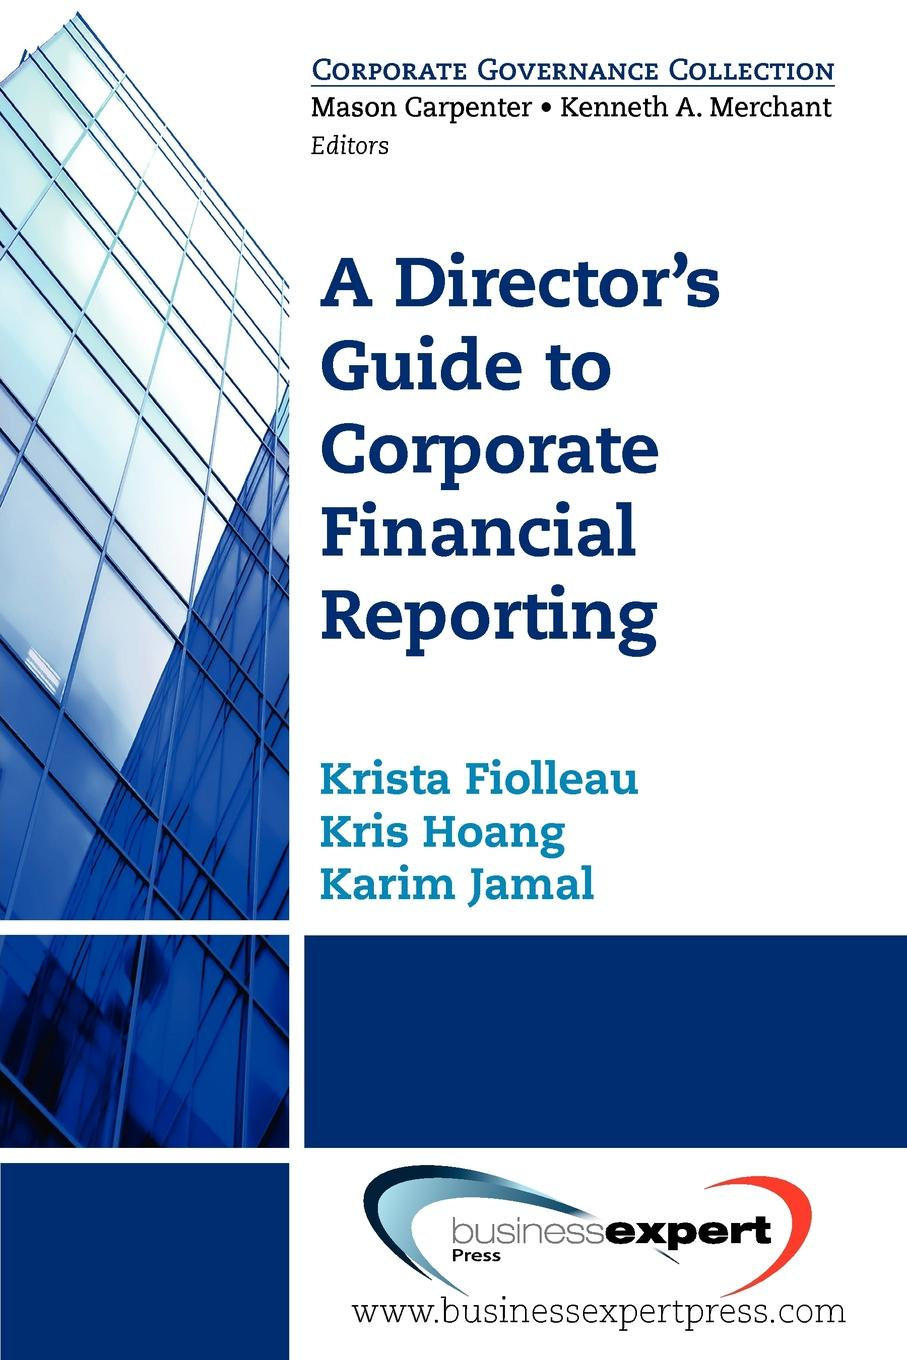 лучшая цена Krista Fiolleau, Kris Hoang, Karim Jamal A Director's Guide to Corporate Financial Reporting